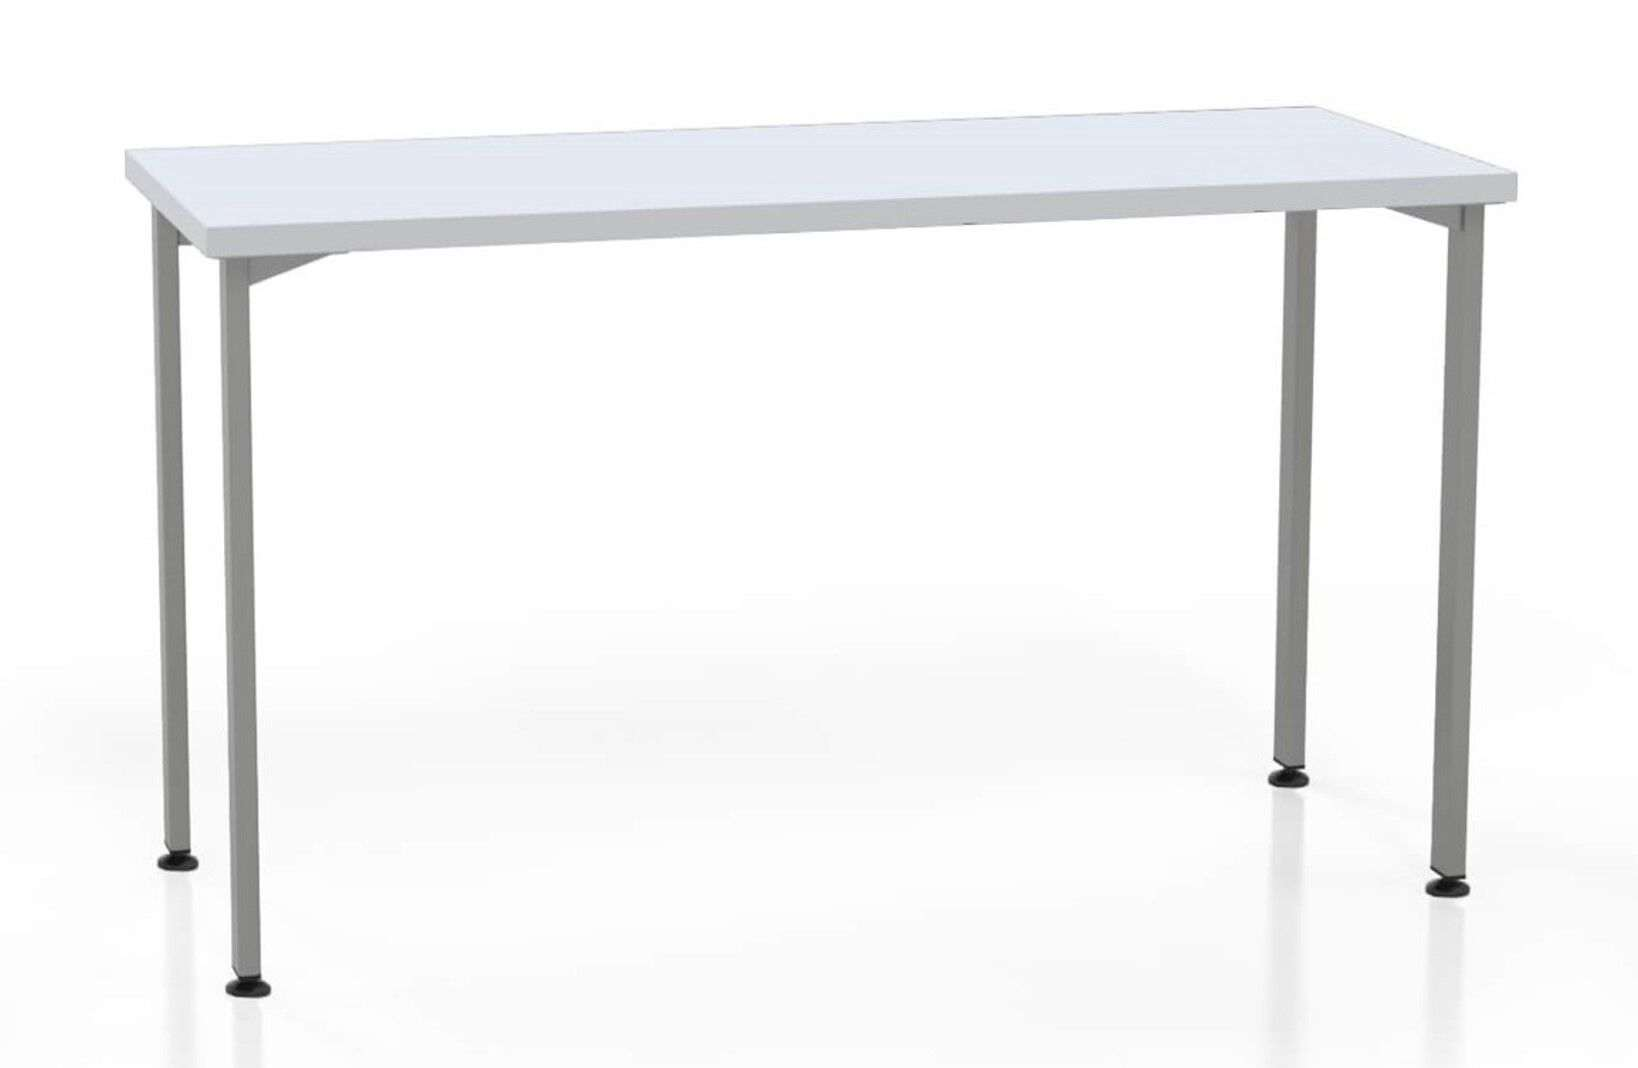 how to build a simple l-shaped desk